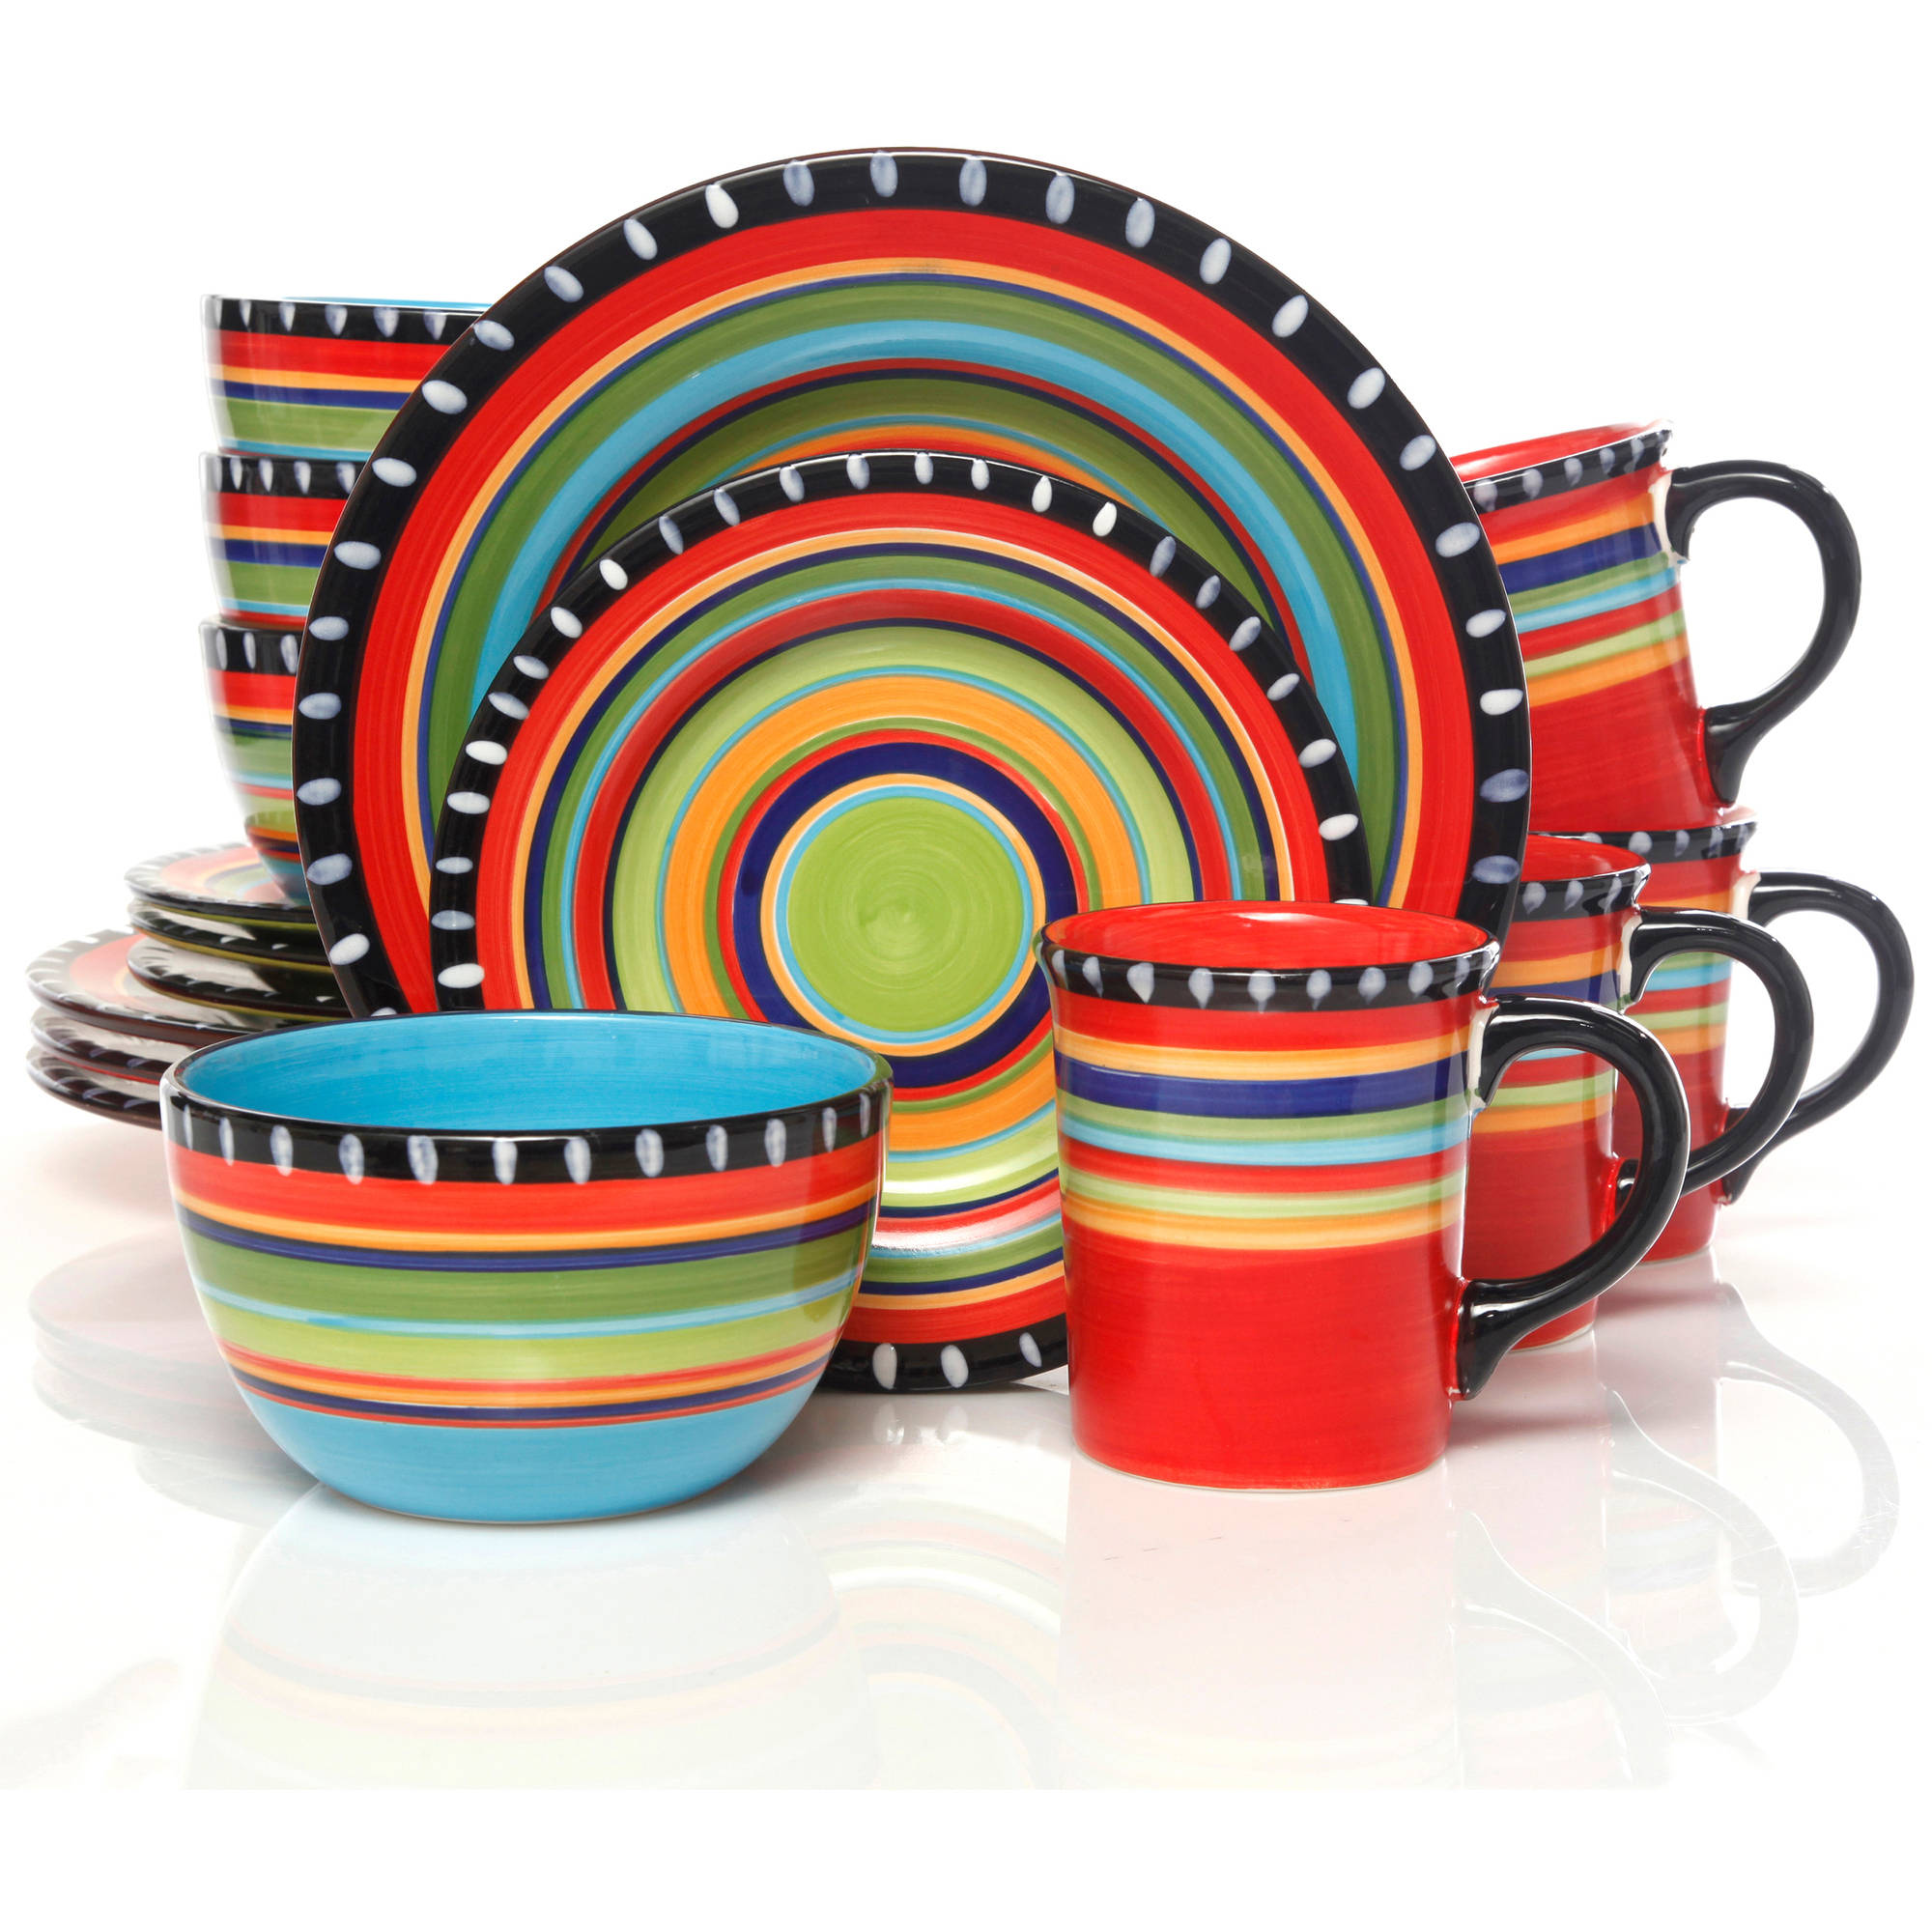 Designed ...  sc 1 st  eBay : home dinnerware set - pezcame.com